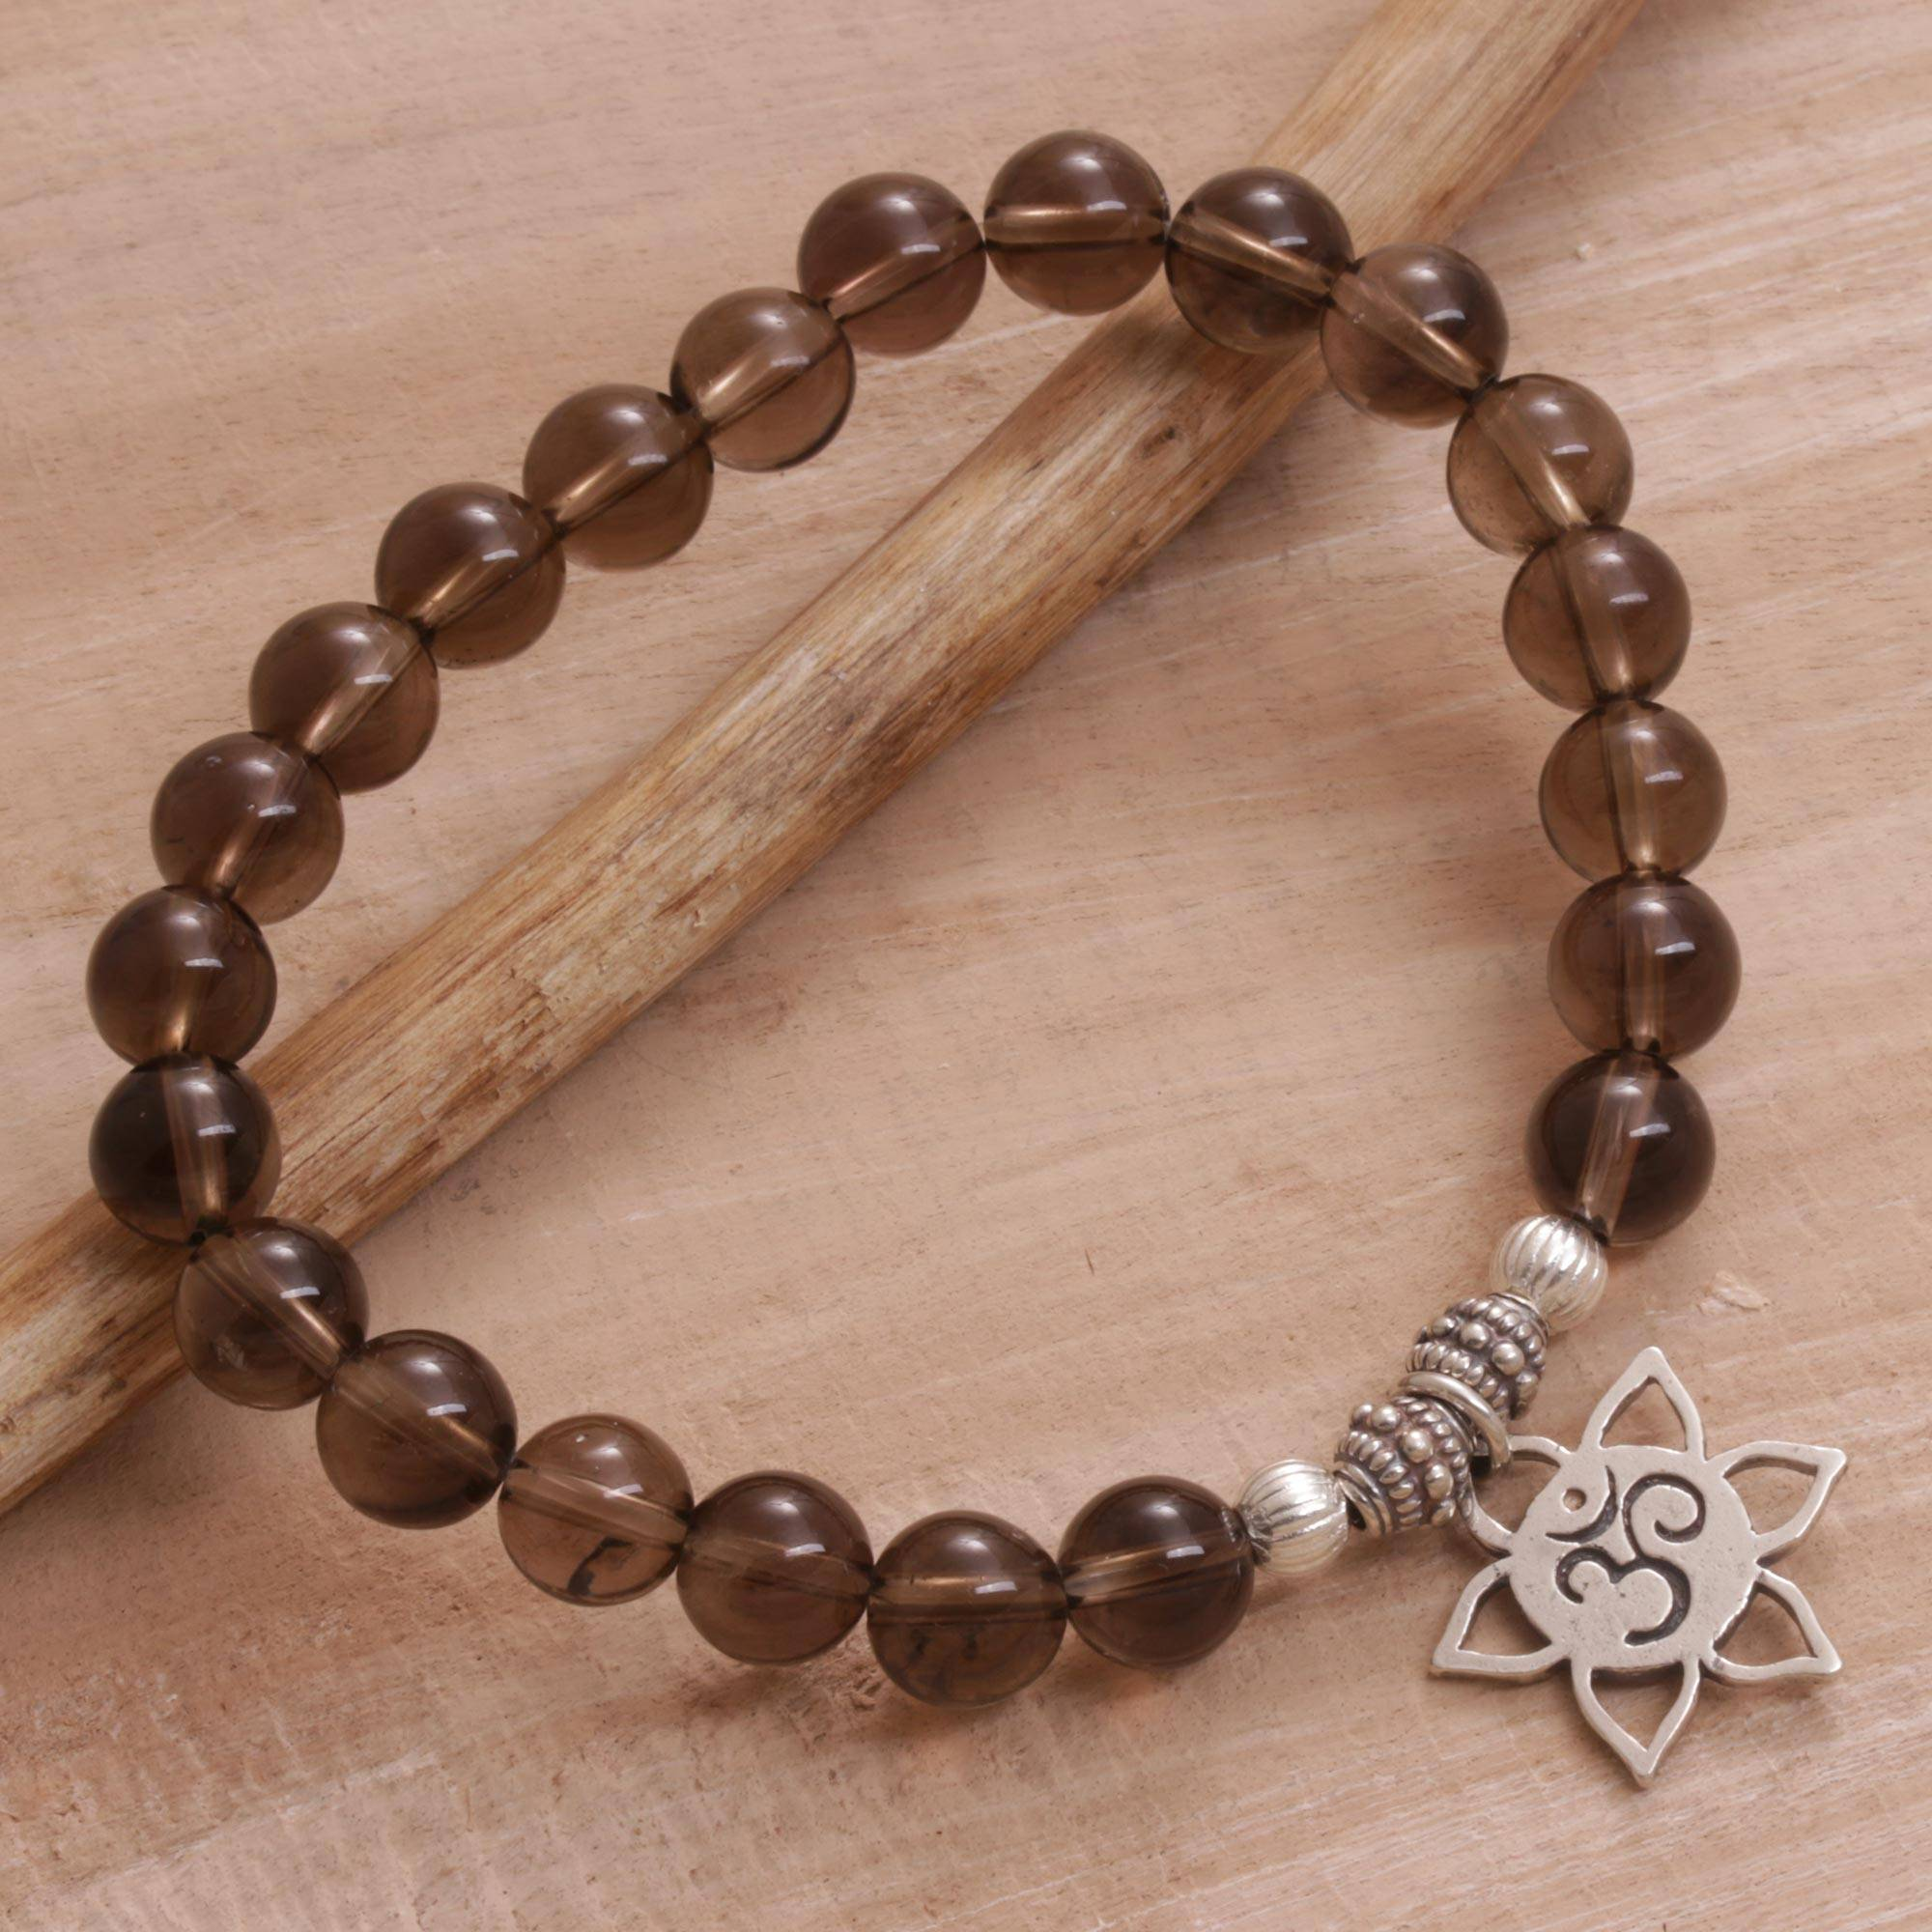 """Handmade Silver and Smoky Quartz Bracelet from Indonesia, """"One with Om"""""""